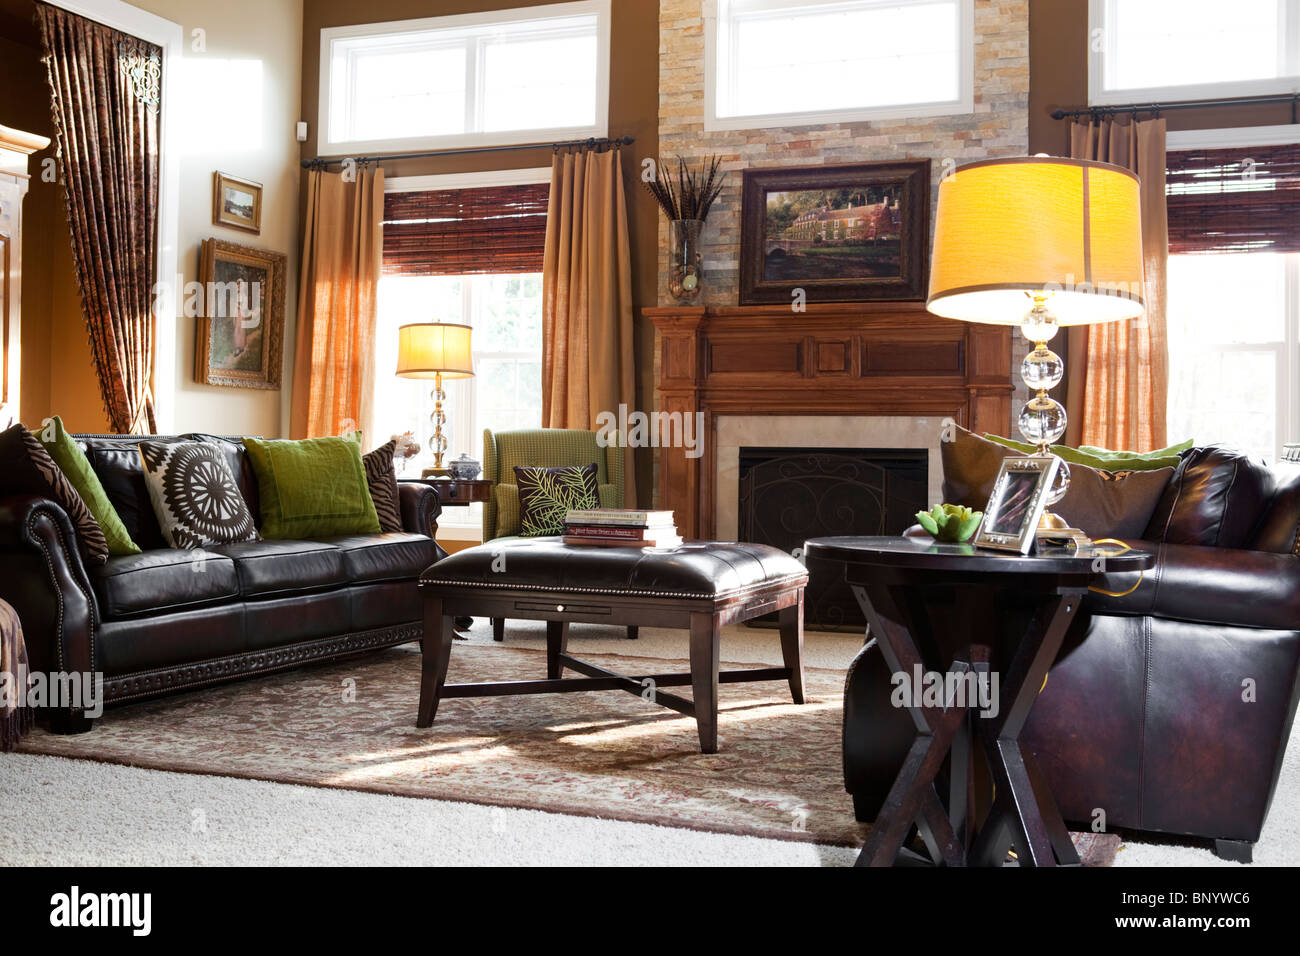 American Living Room In Countryside House In Midwest, With Matching Colors Part 66